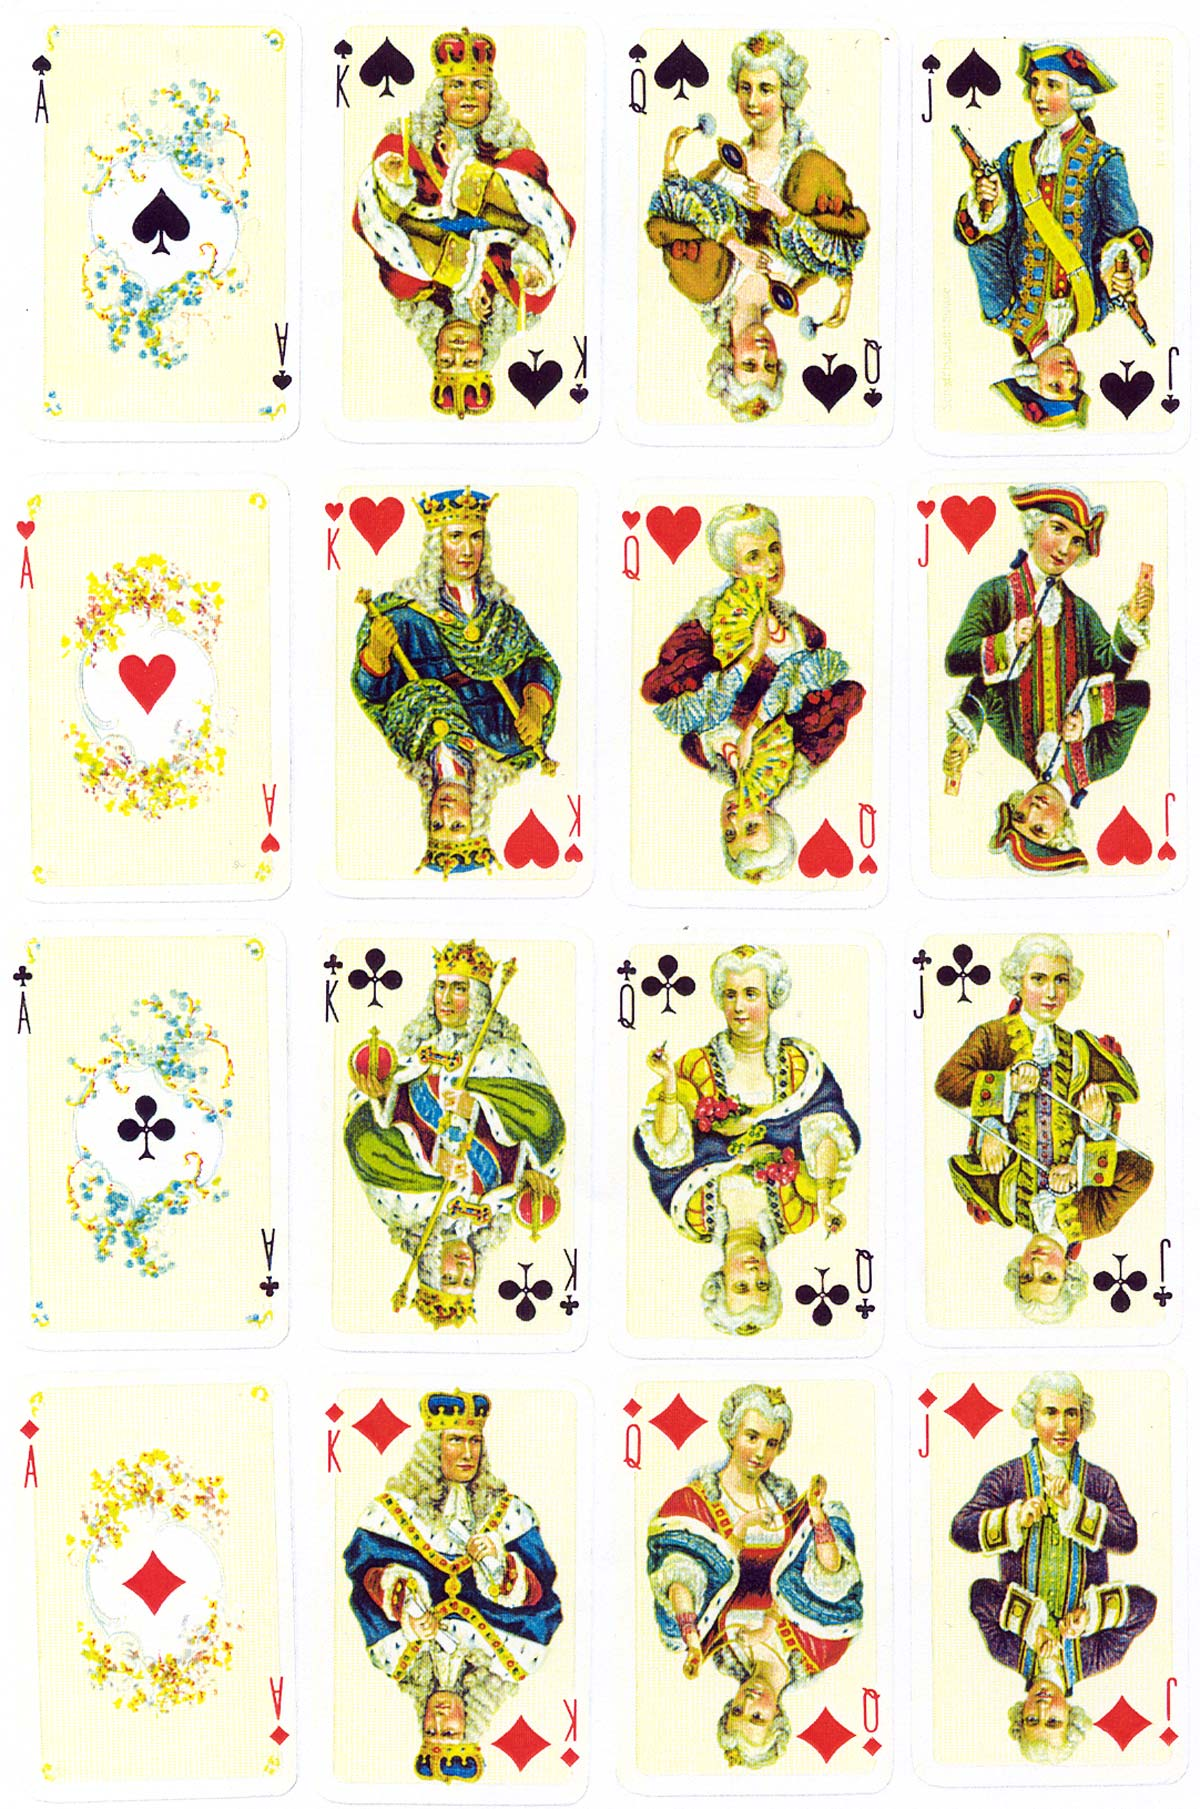 'Rococco' playing cards designed by Melchior Annen, printed by Müller & Cie, c.1920